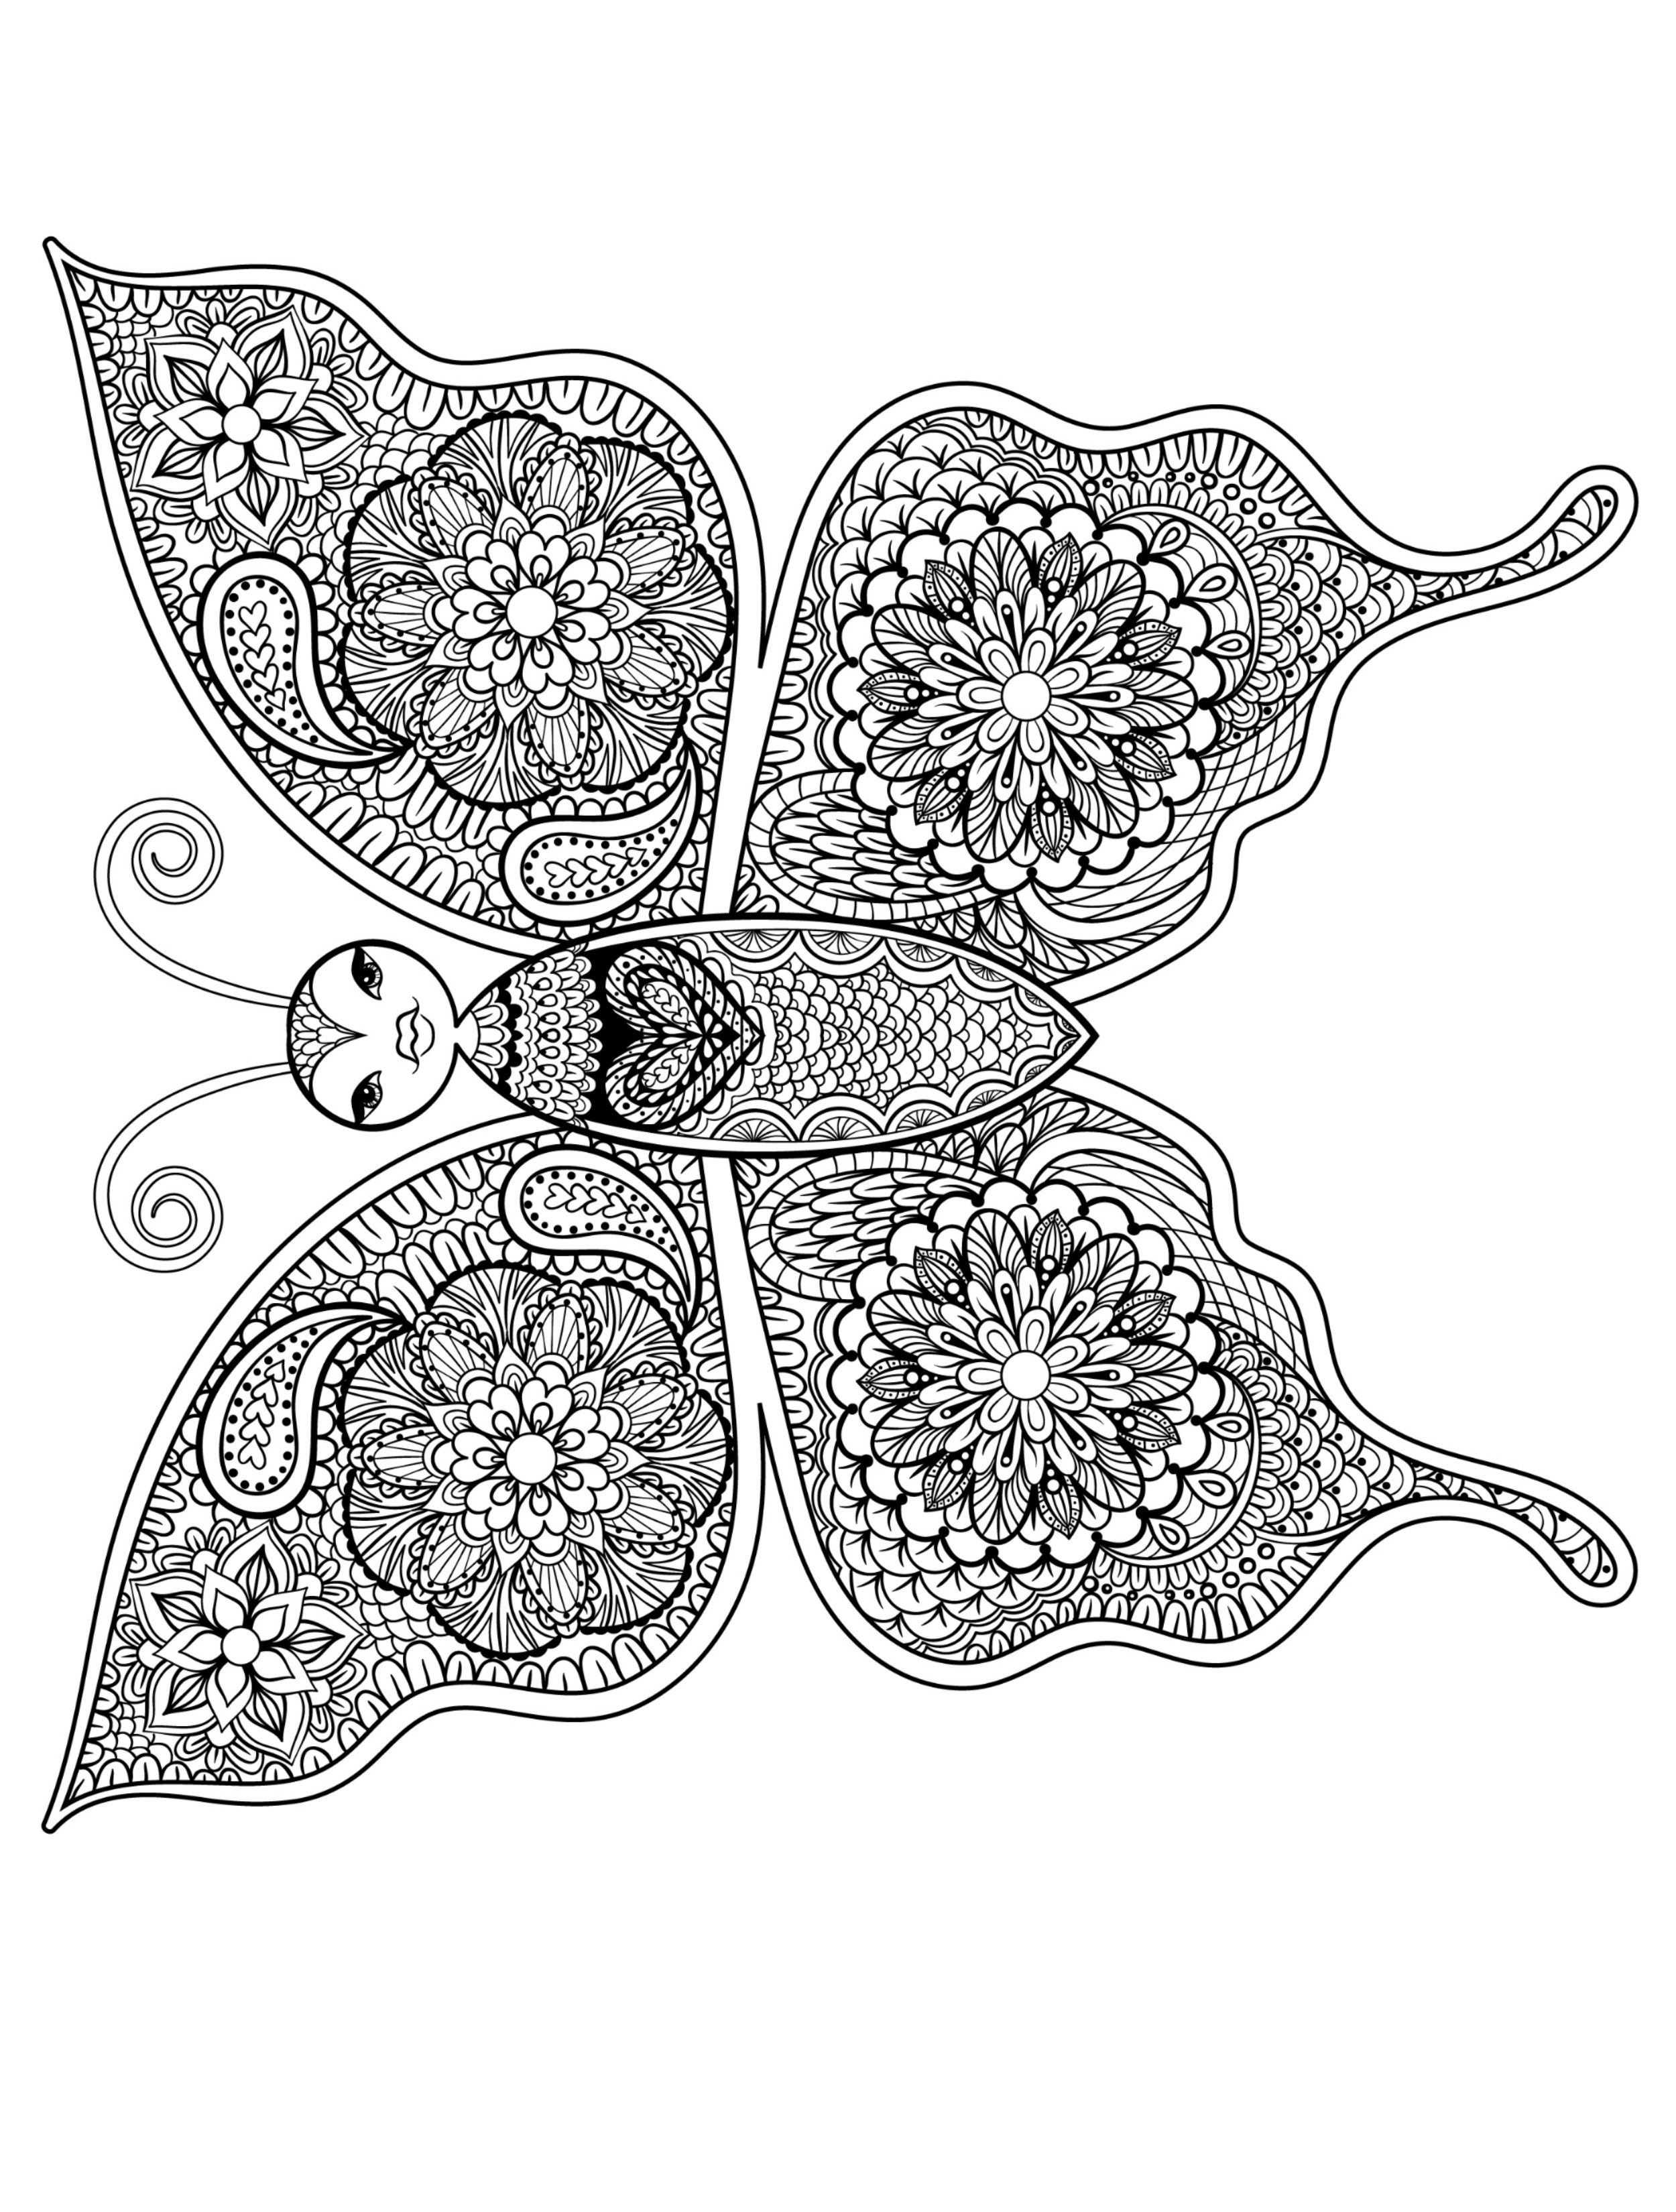 Mobile shimmer and shine coloring games coloring pages ausmalbilder - 23 Free Printable Insect Animal Adult Coloring Pages